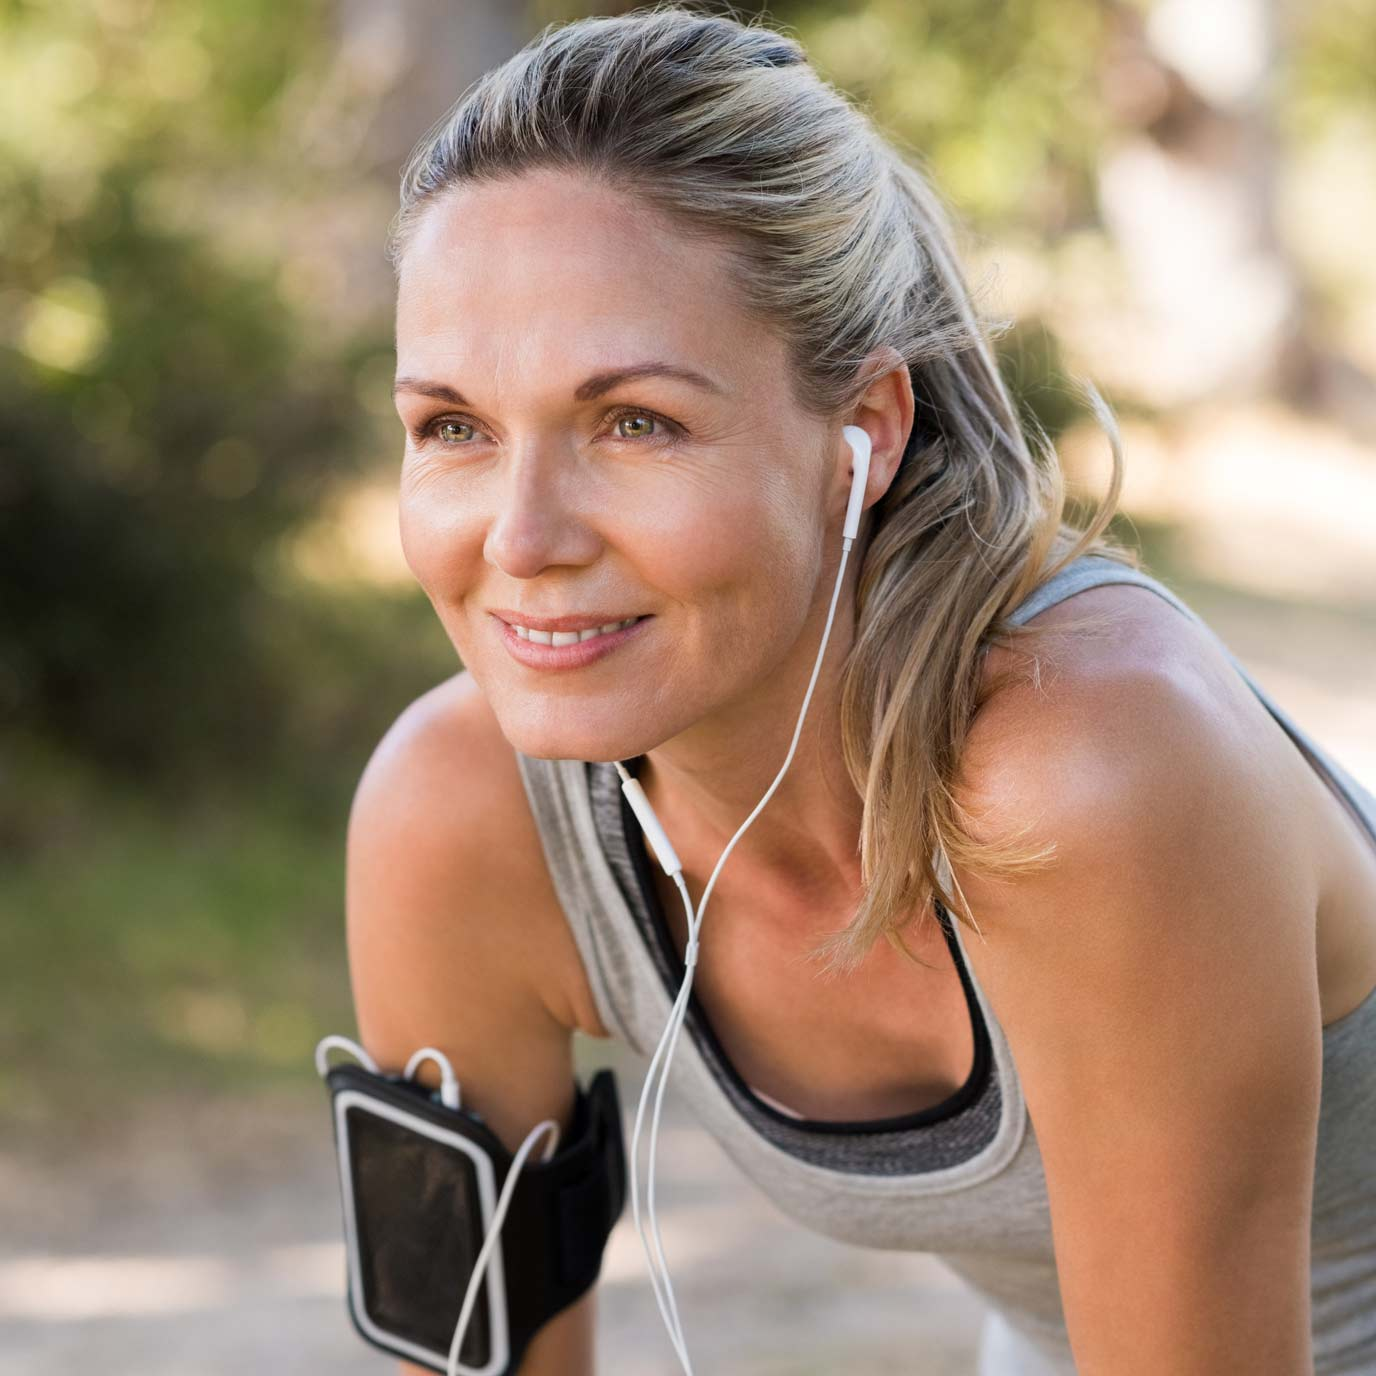 Read about how our risk of injury during exercise increases each time we have a period